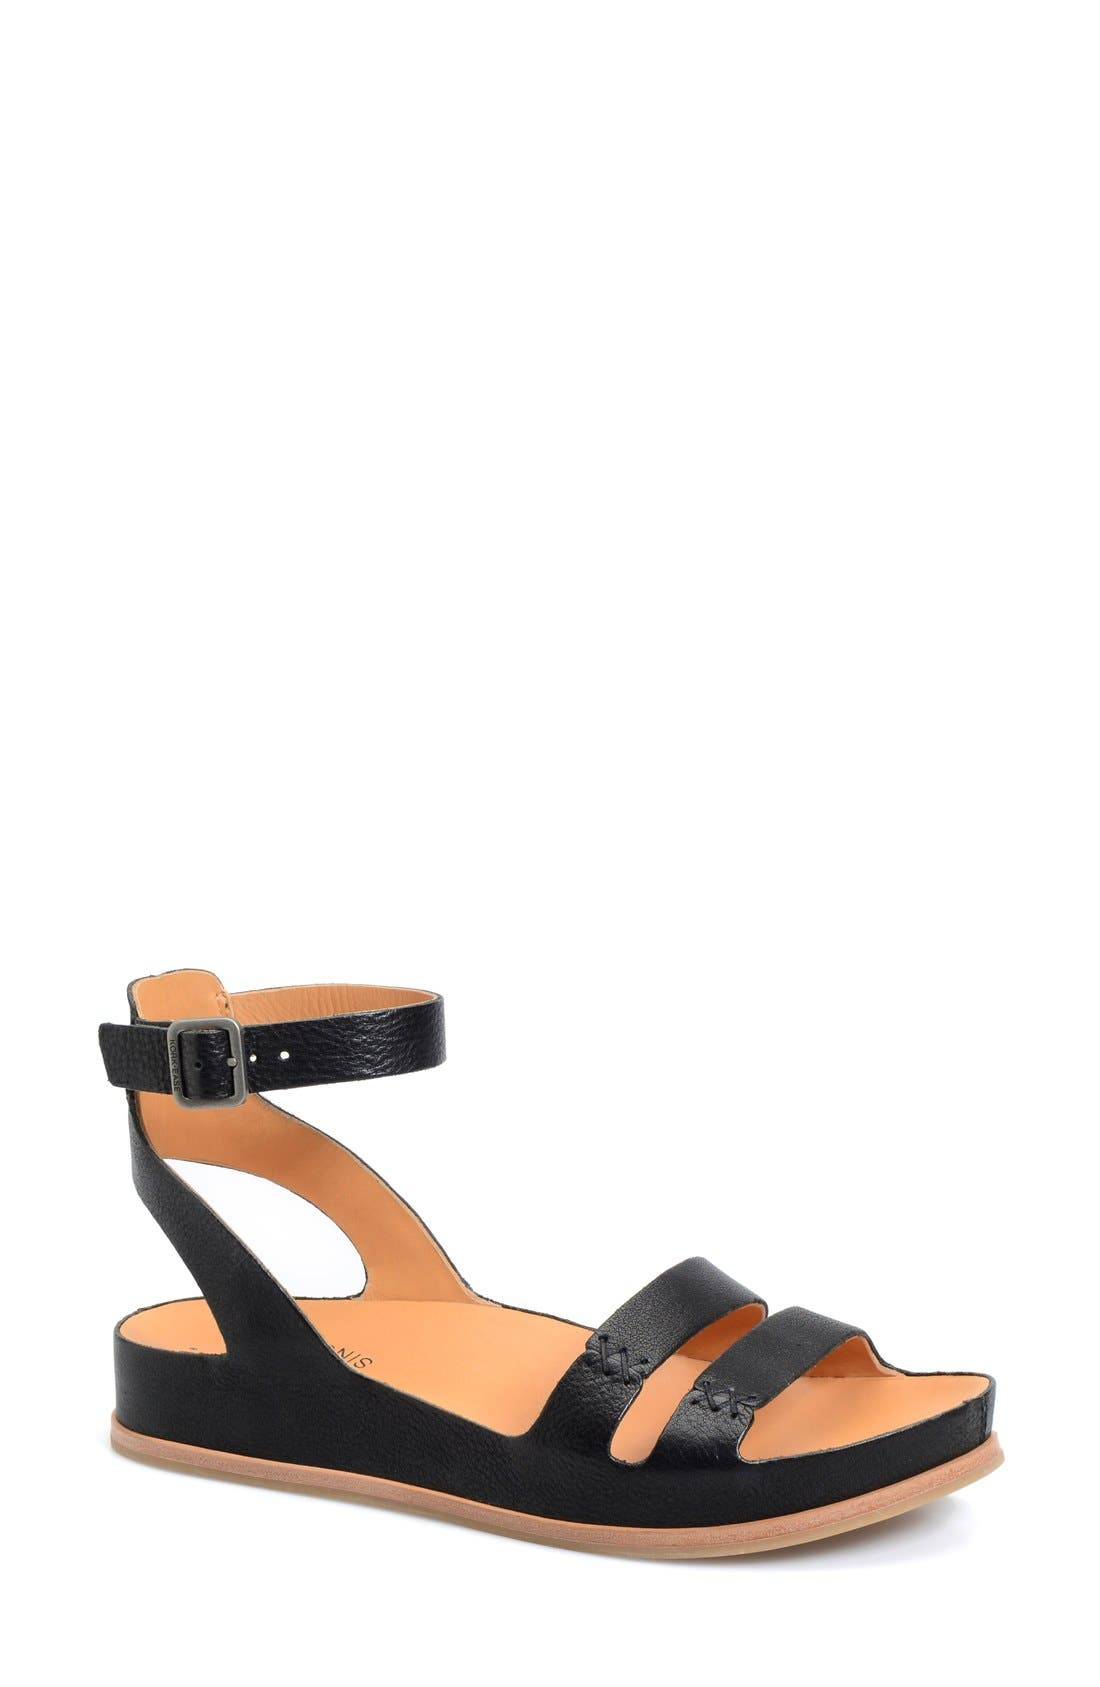 'Audrina' Ankle Strap Sandal,                             Main thumbnail 1, color,                             BLACK LEATHER